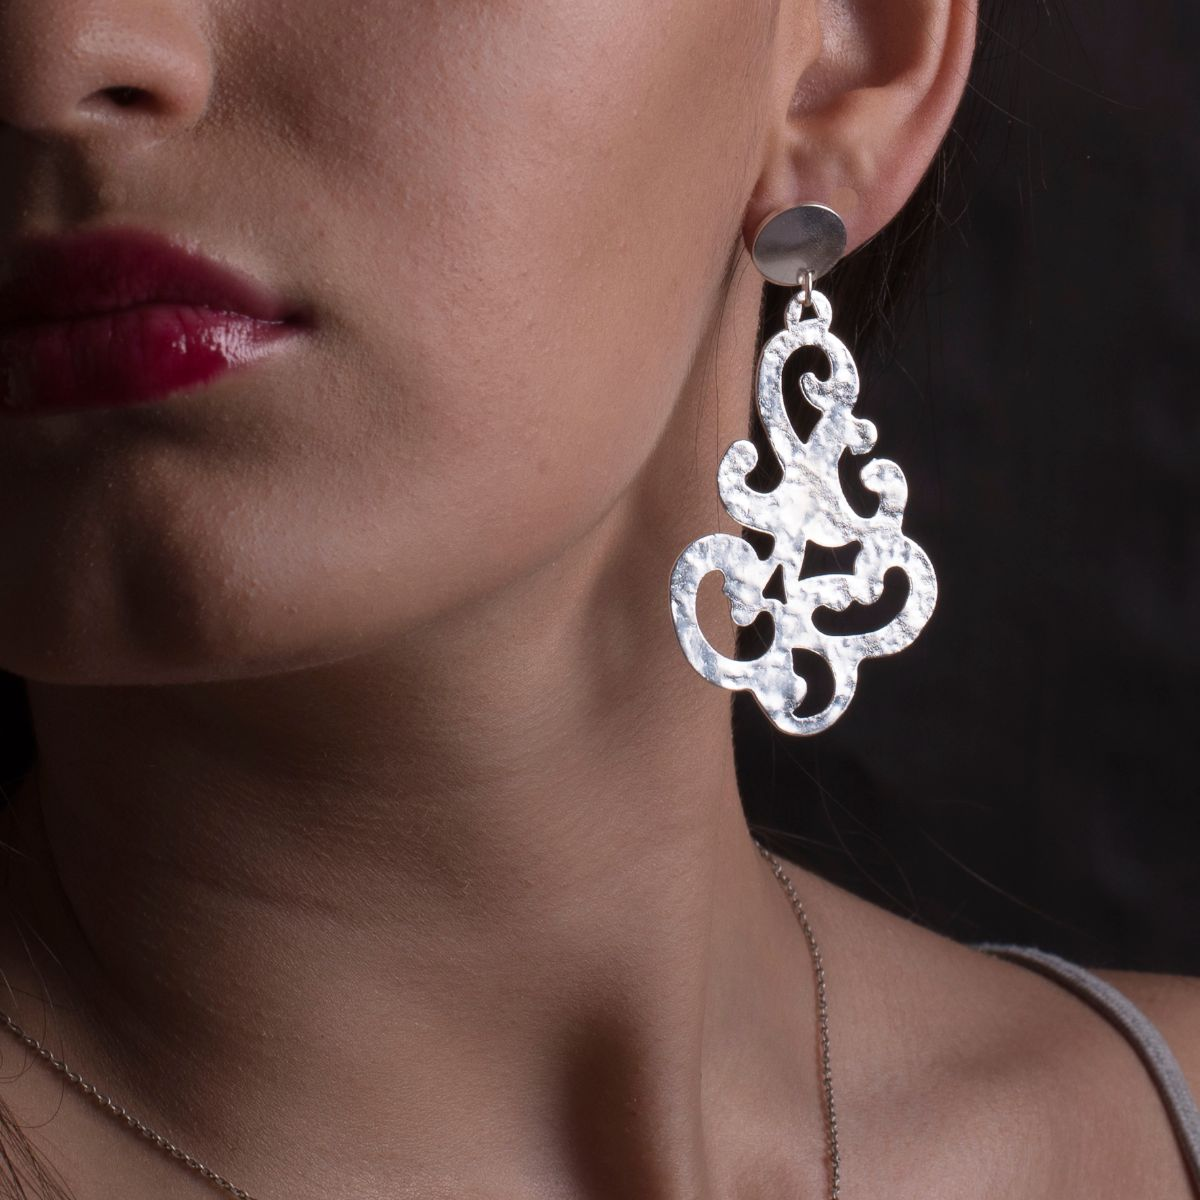 Baroque long metallic earring with silver finish in an original filigree shape with hypoallergenic snap closure